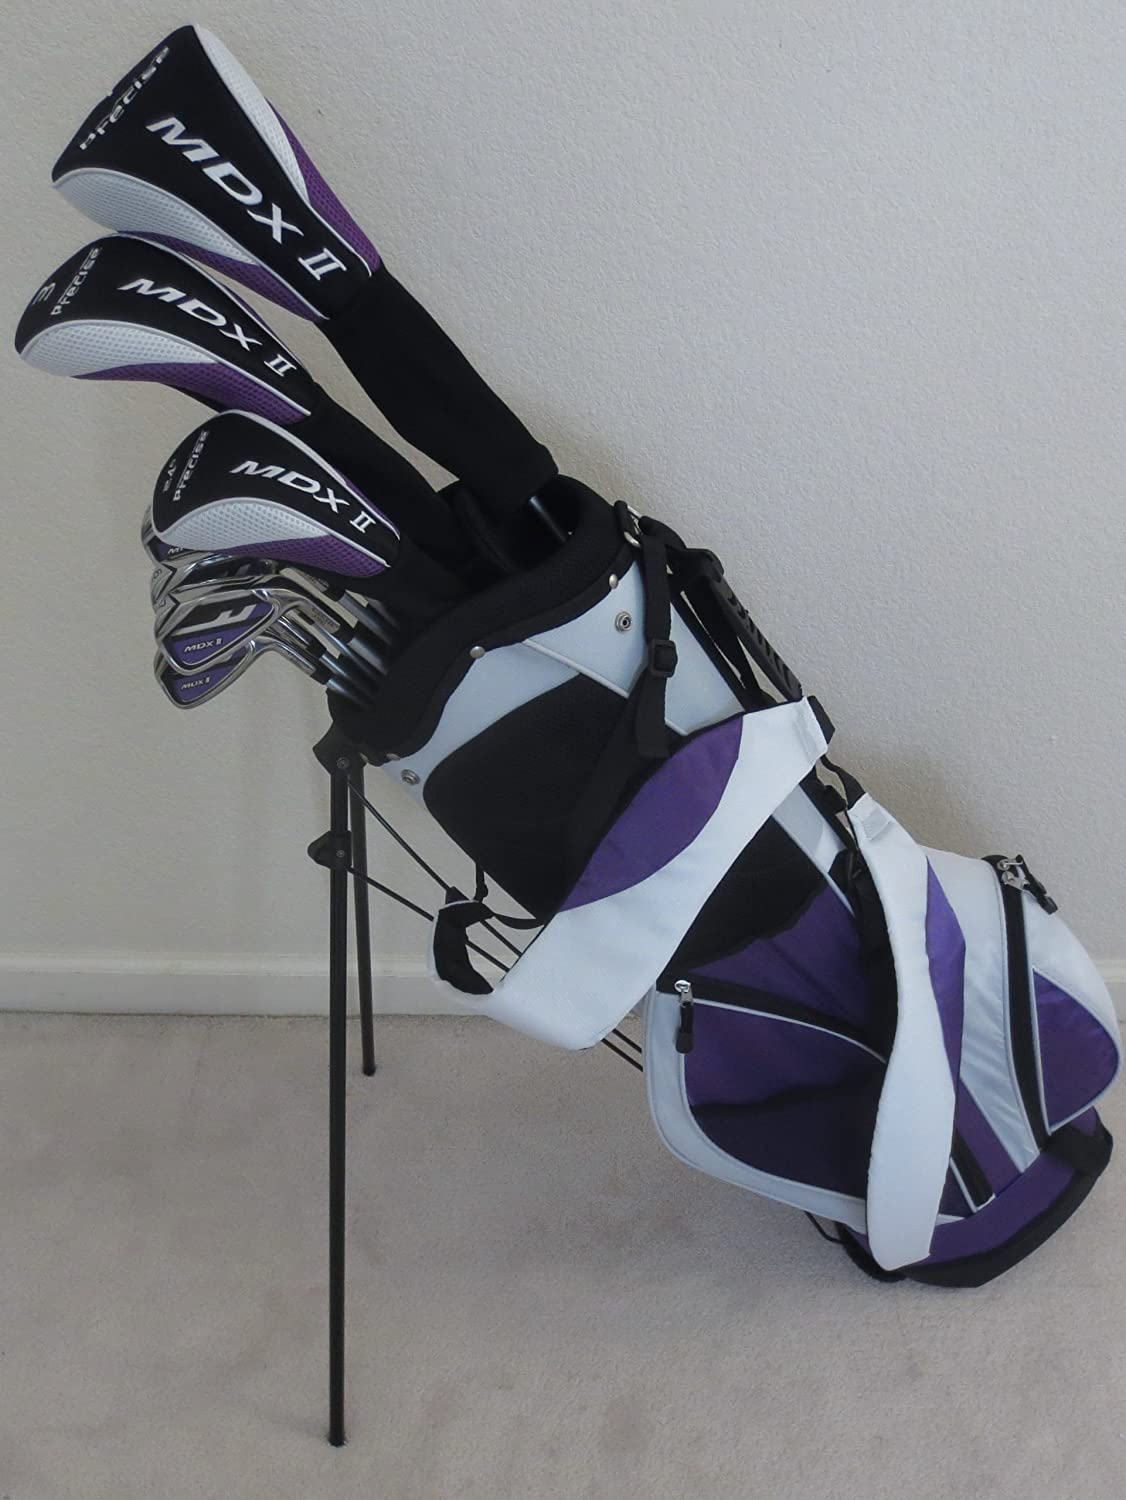 Ladies Complete Professional Golf Set Womens Right Handed Clubs Driver, Fairway Wood, Hybrid, Irons Putter Bag